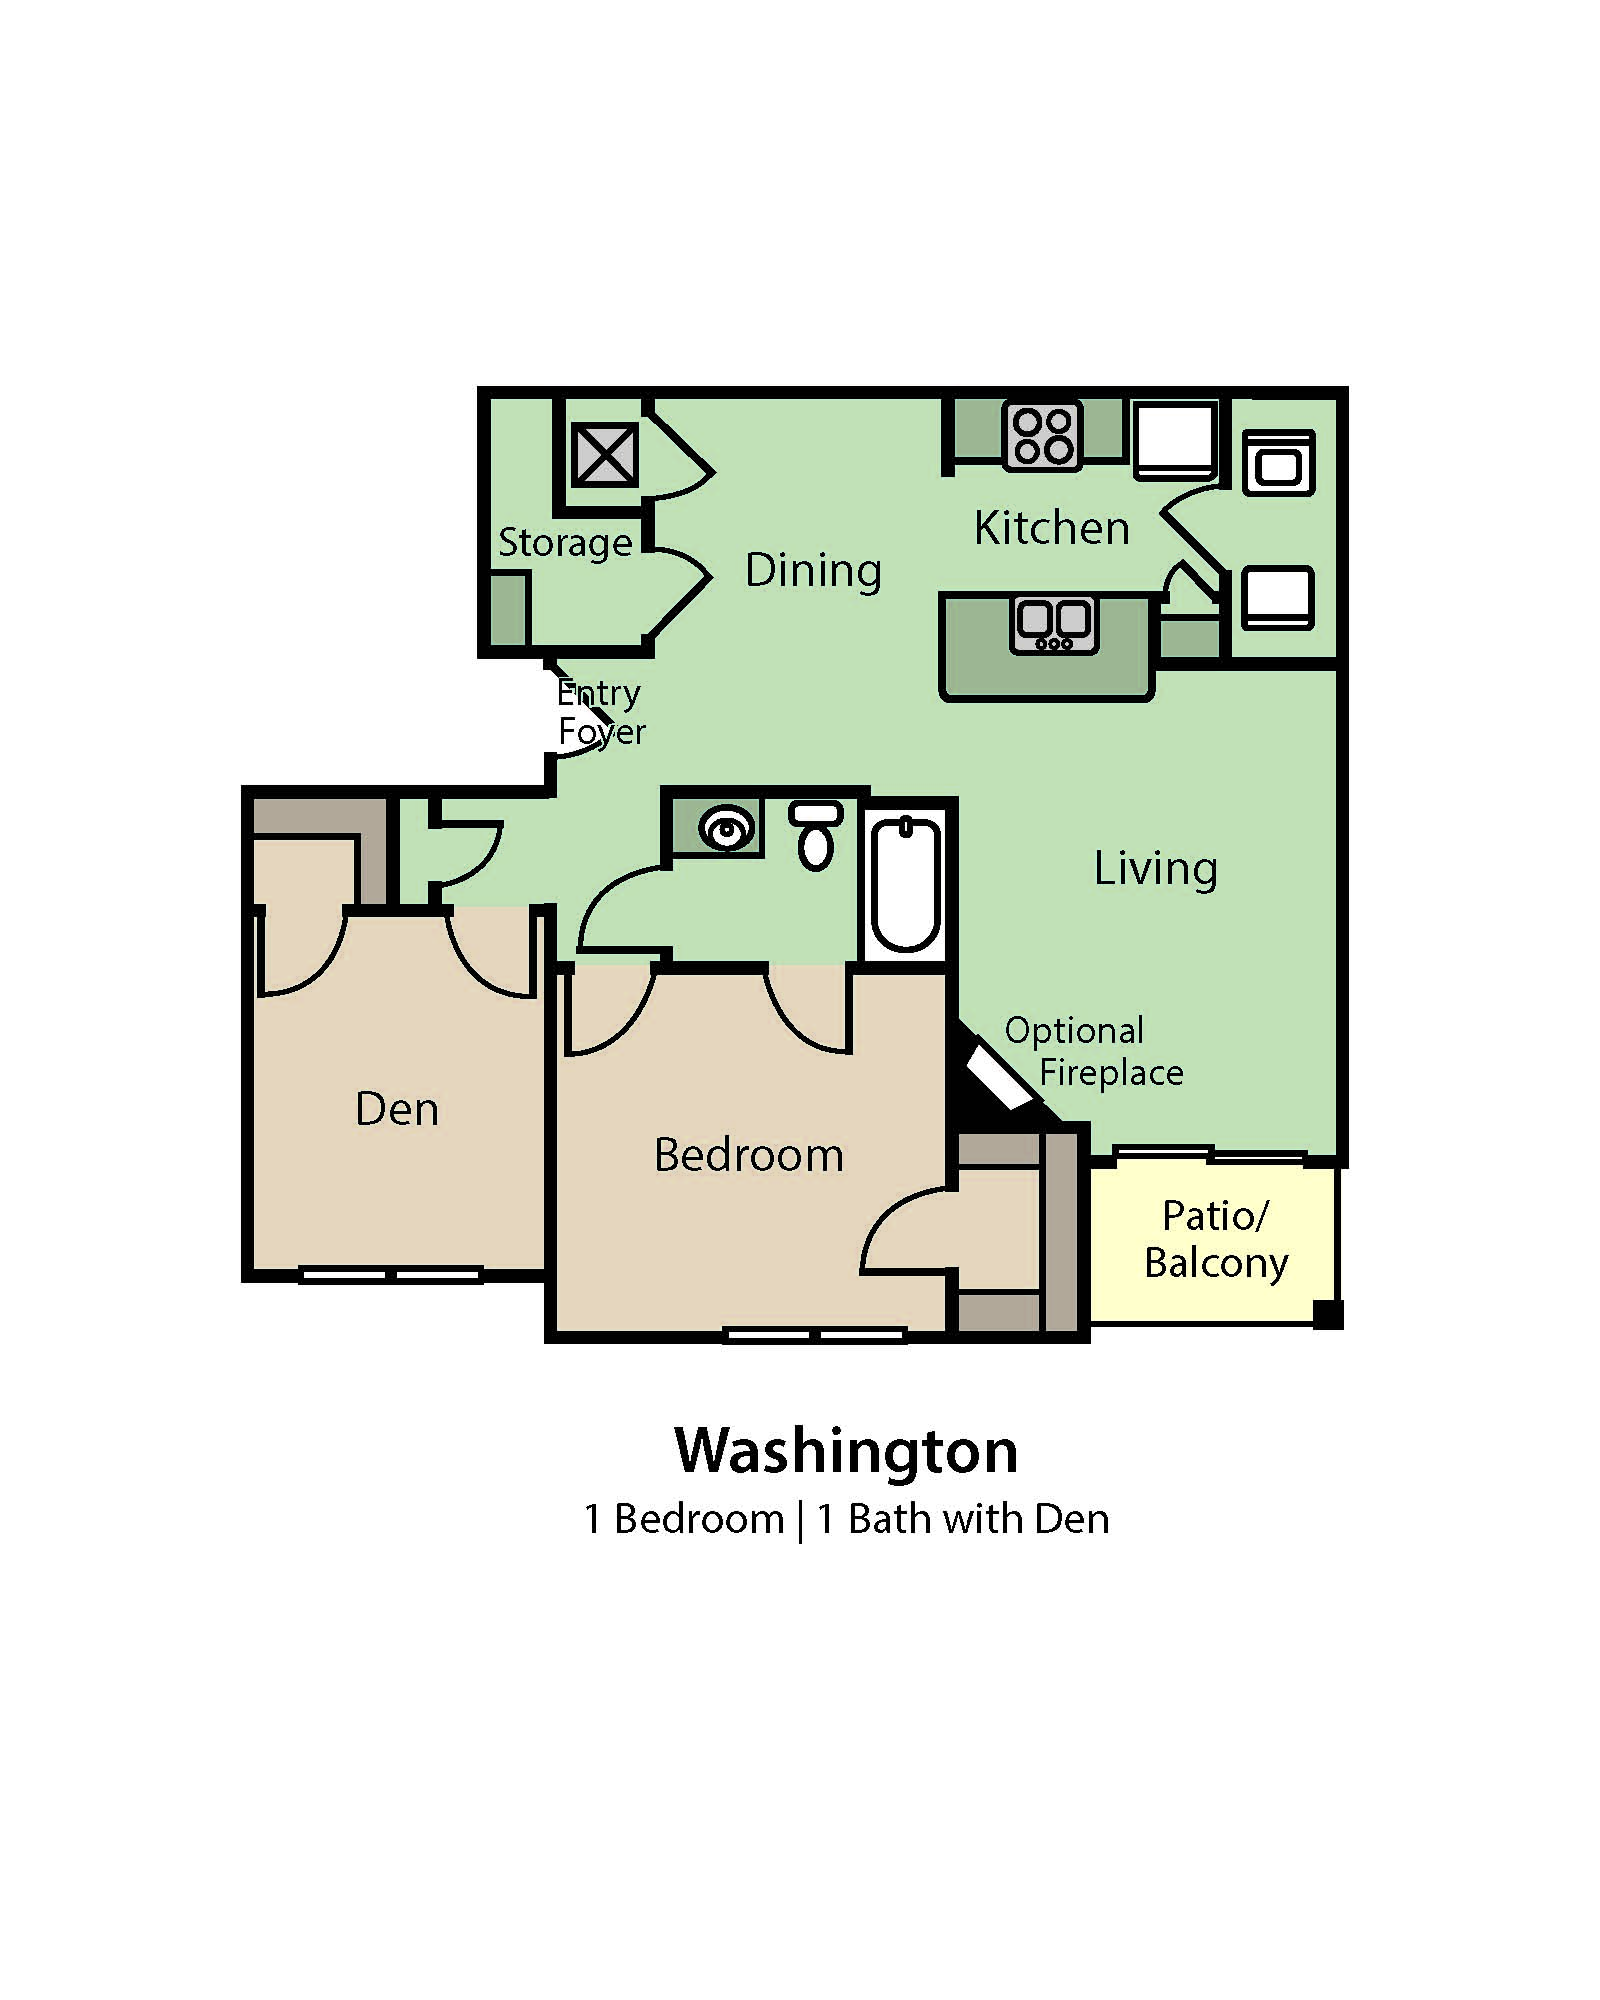 Washington 1 Bedroom, 1 Bath floor plan